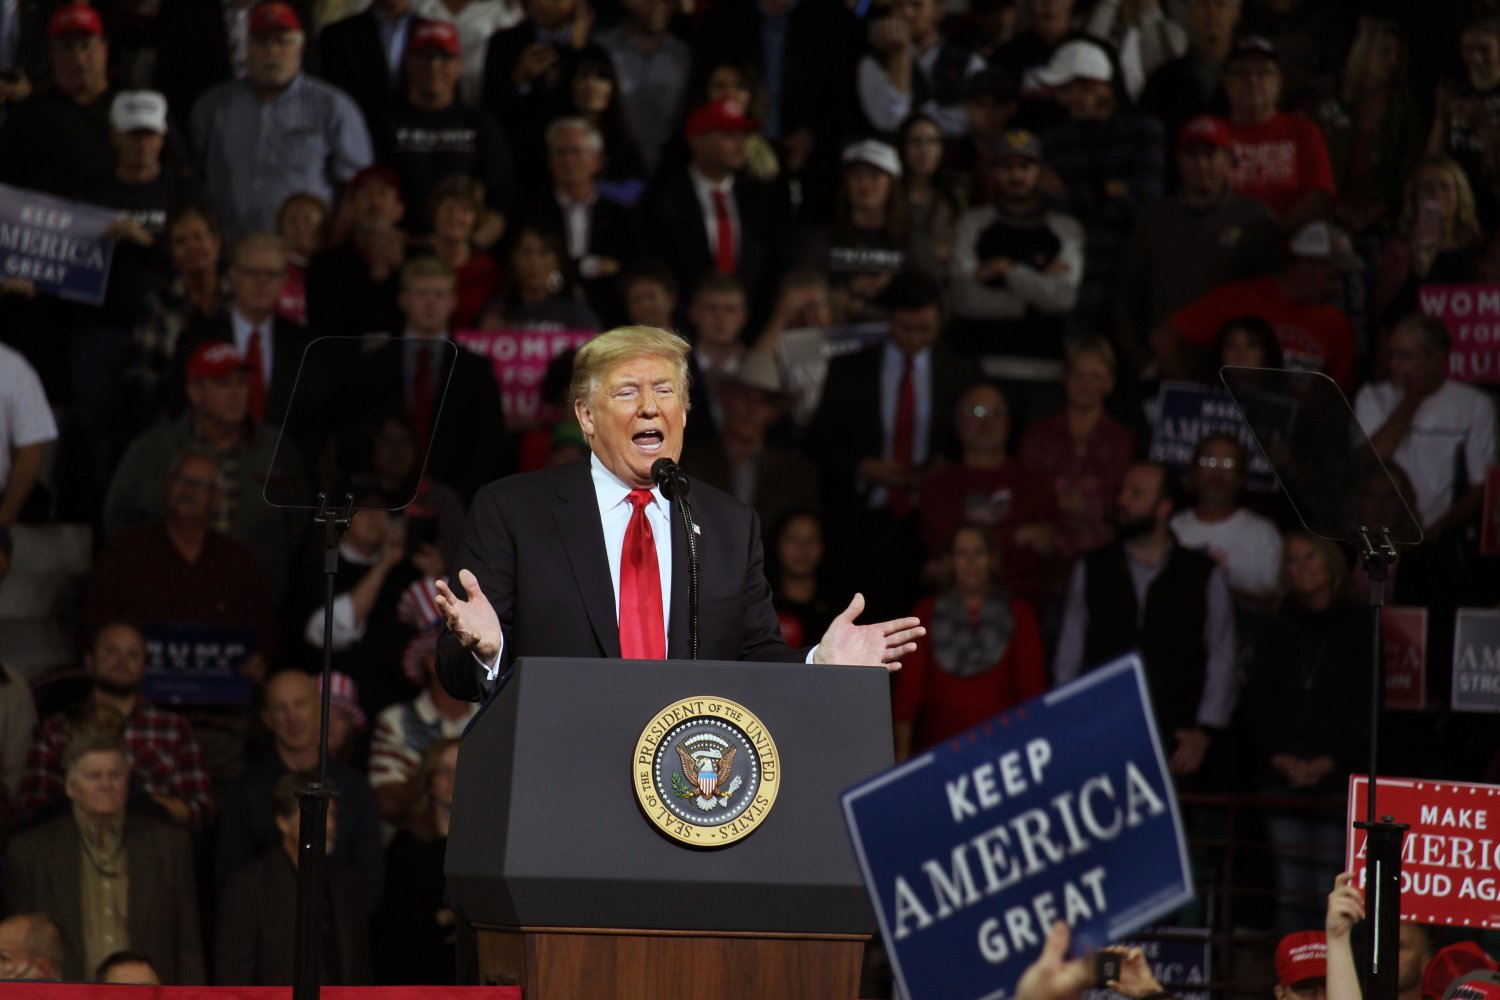 President Donald Trump discusses his political agenda with the crowd at his rally in Topeka, Kansas on Oct. 6. There he spoke of future opponents and other politicians while endorsing some whom he would like to see in office, such as Kris Kobach for governor and Steve Watkins for Senate.